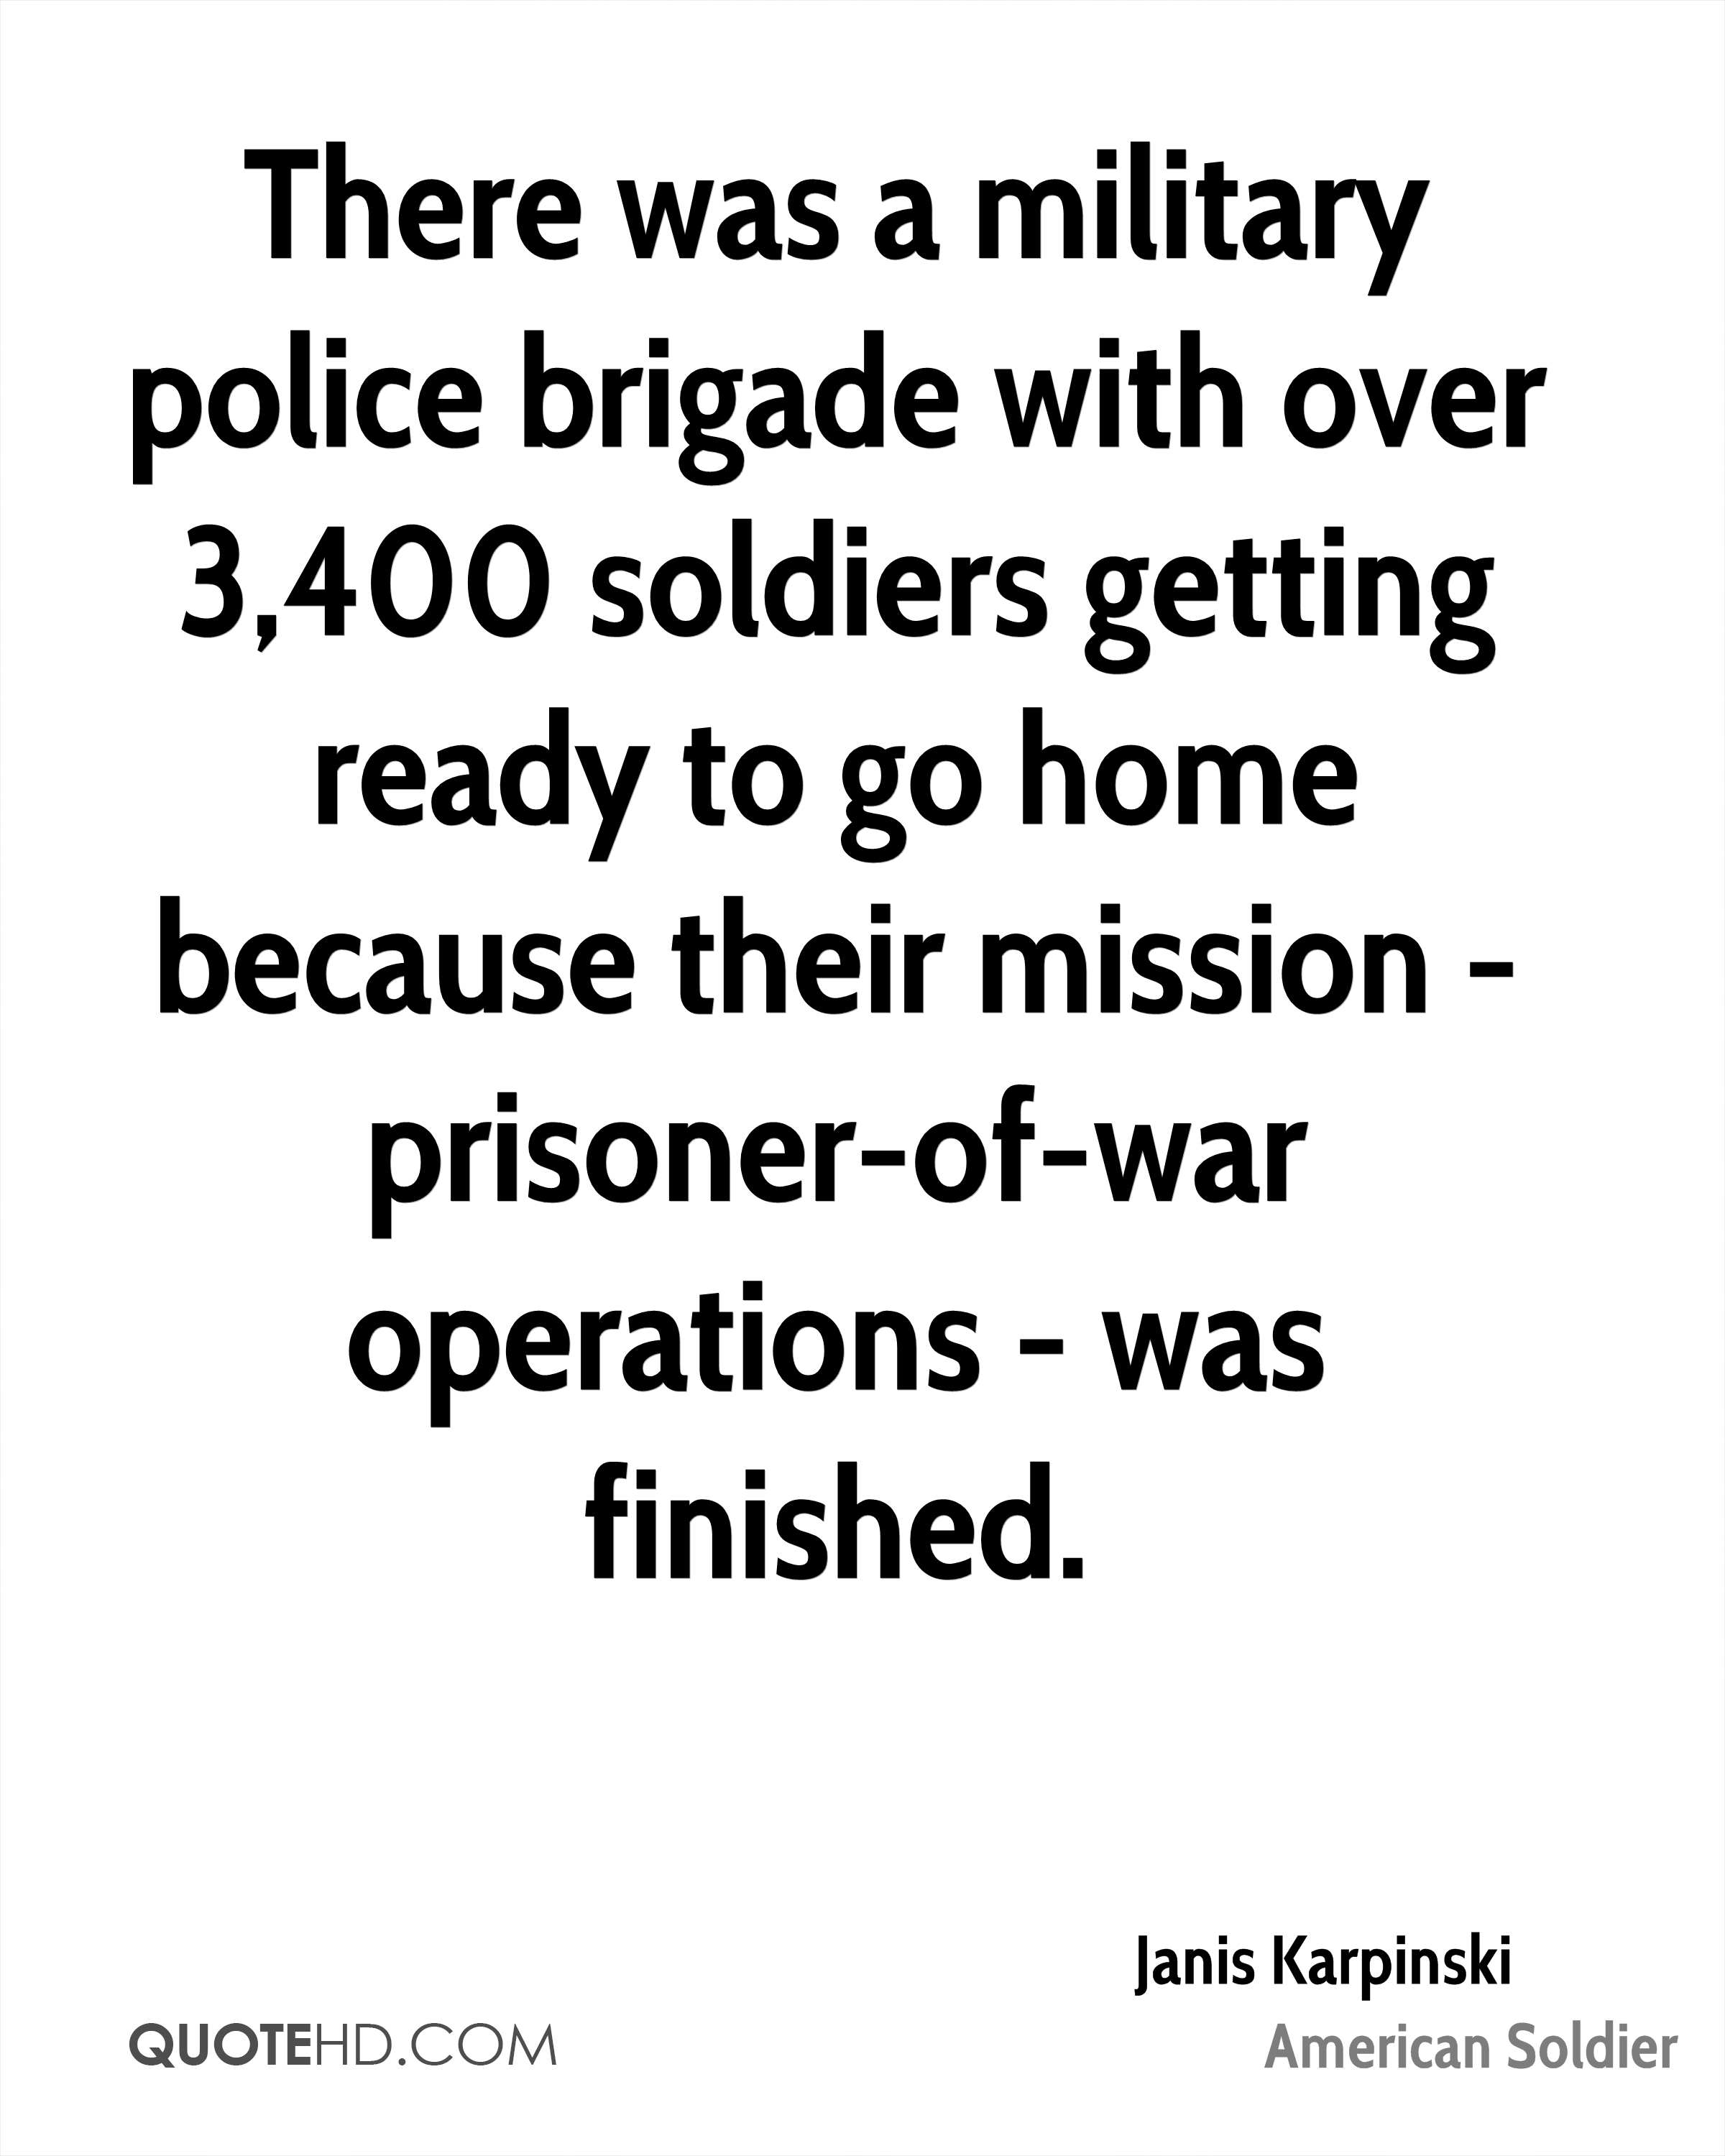 There was a military police brigade with over 3,400 soldiers getting ready to go home because their mission - prisoner-of-war operations - was finished.